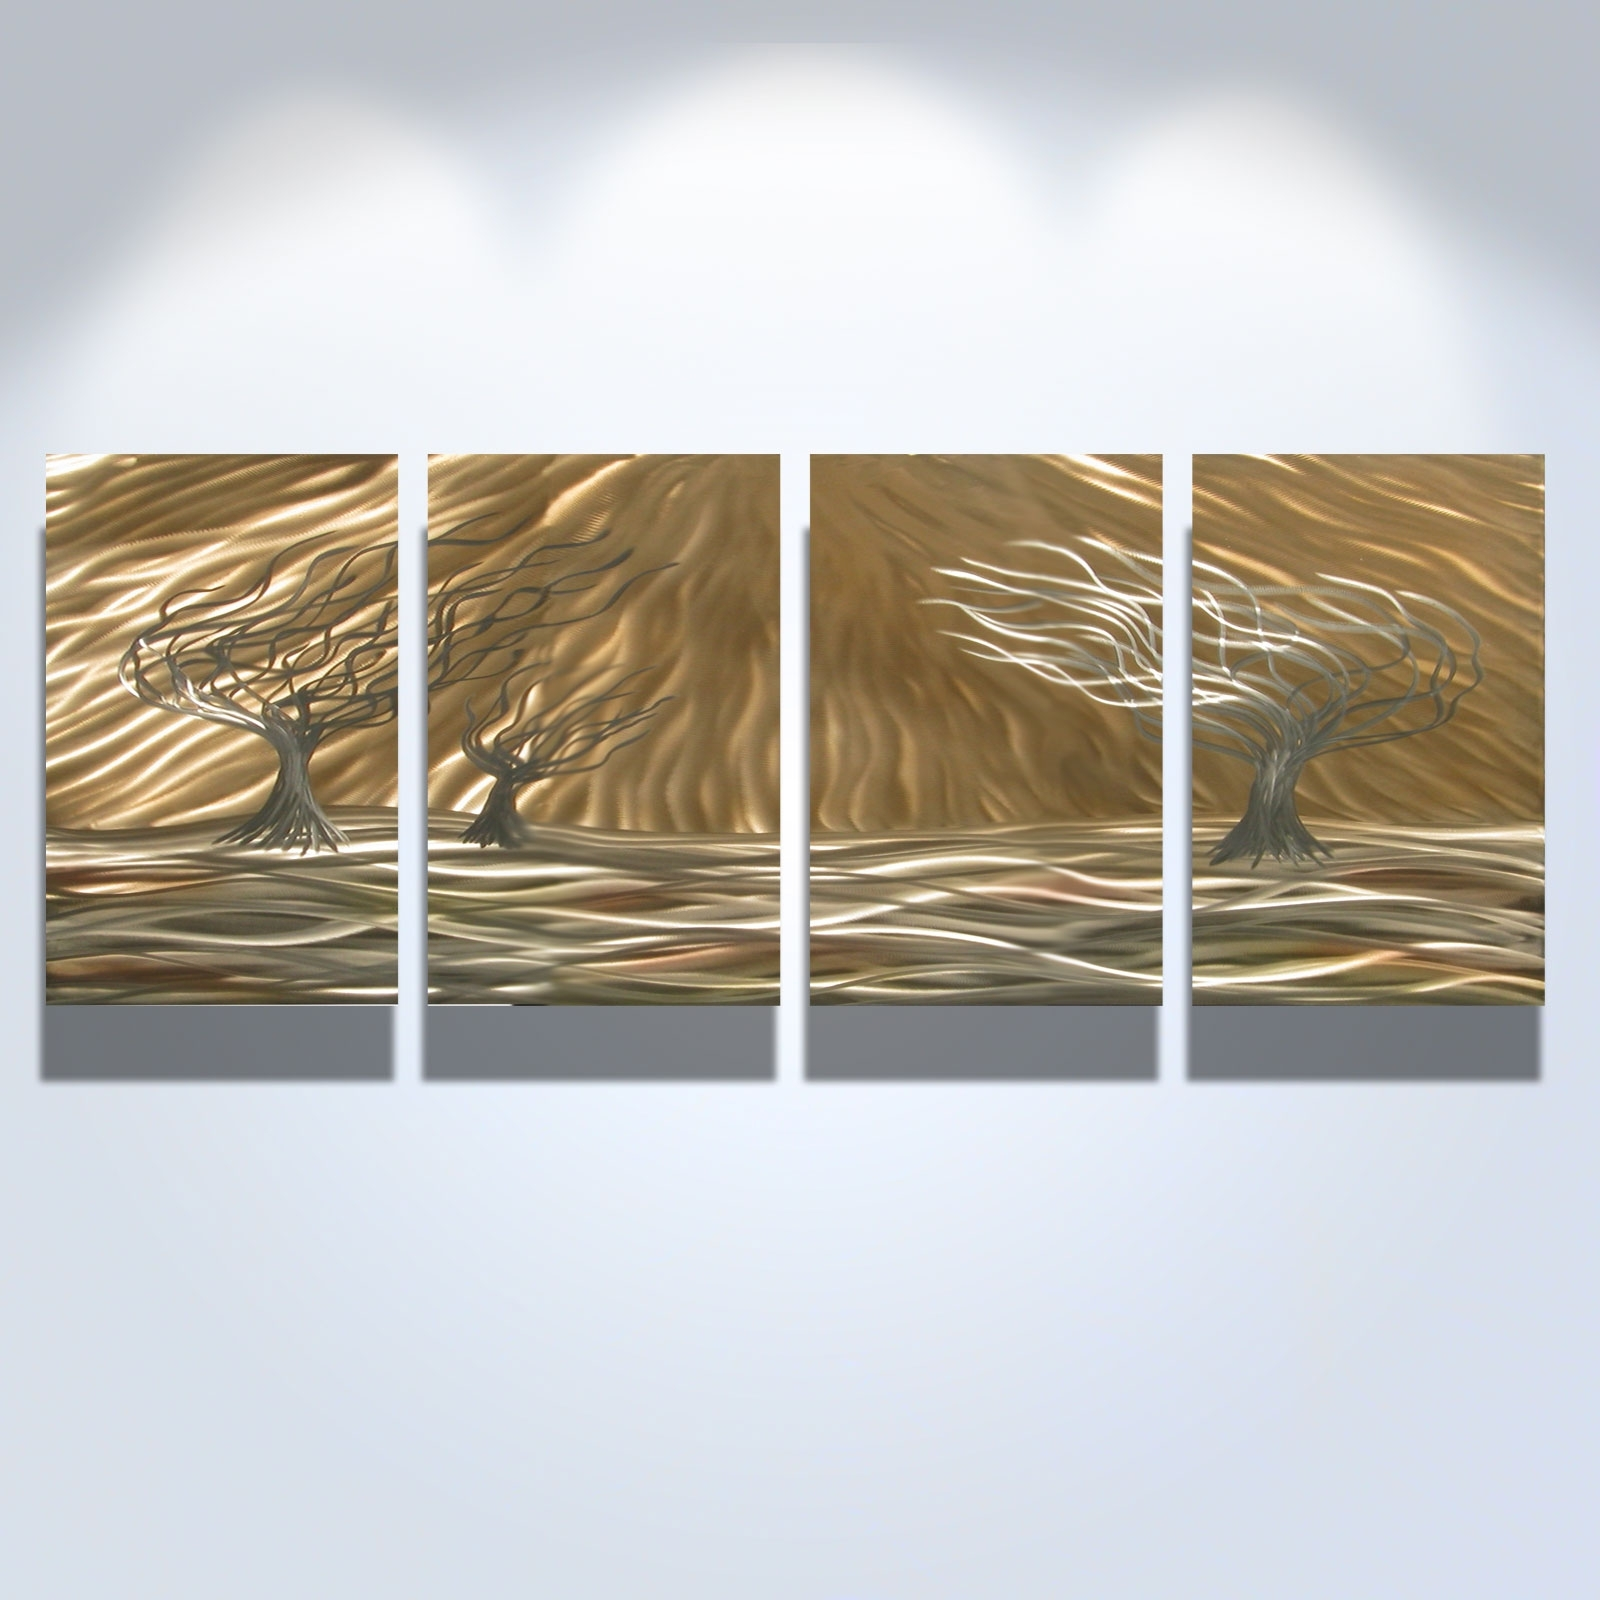 Fashionable Contemporary Metal Wall Art For 3 Trees 4 Panel – Abstract Metal Wall Art Contemporary Modern Decor (Gallery 15 of 15)